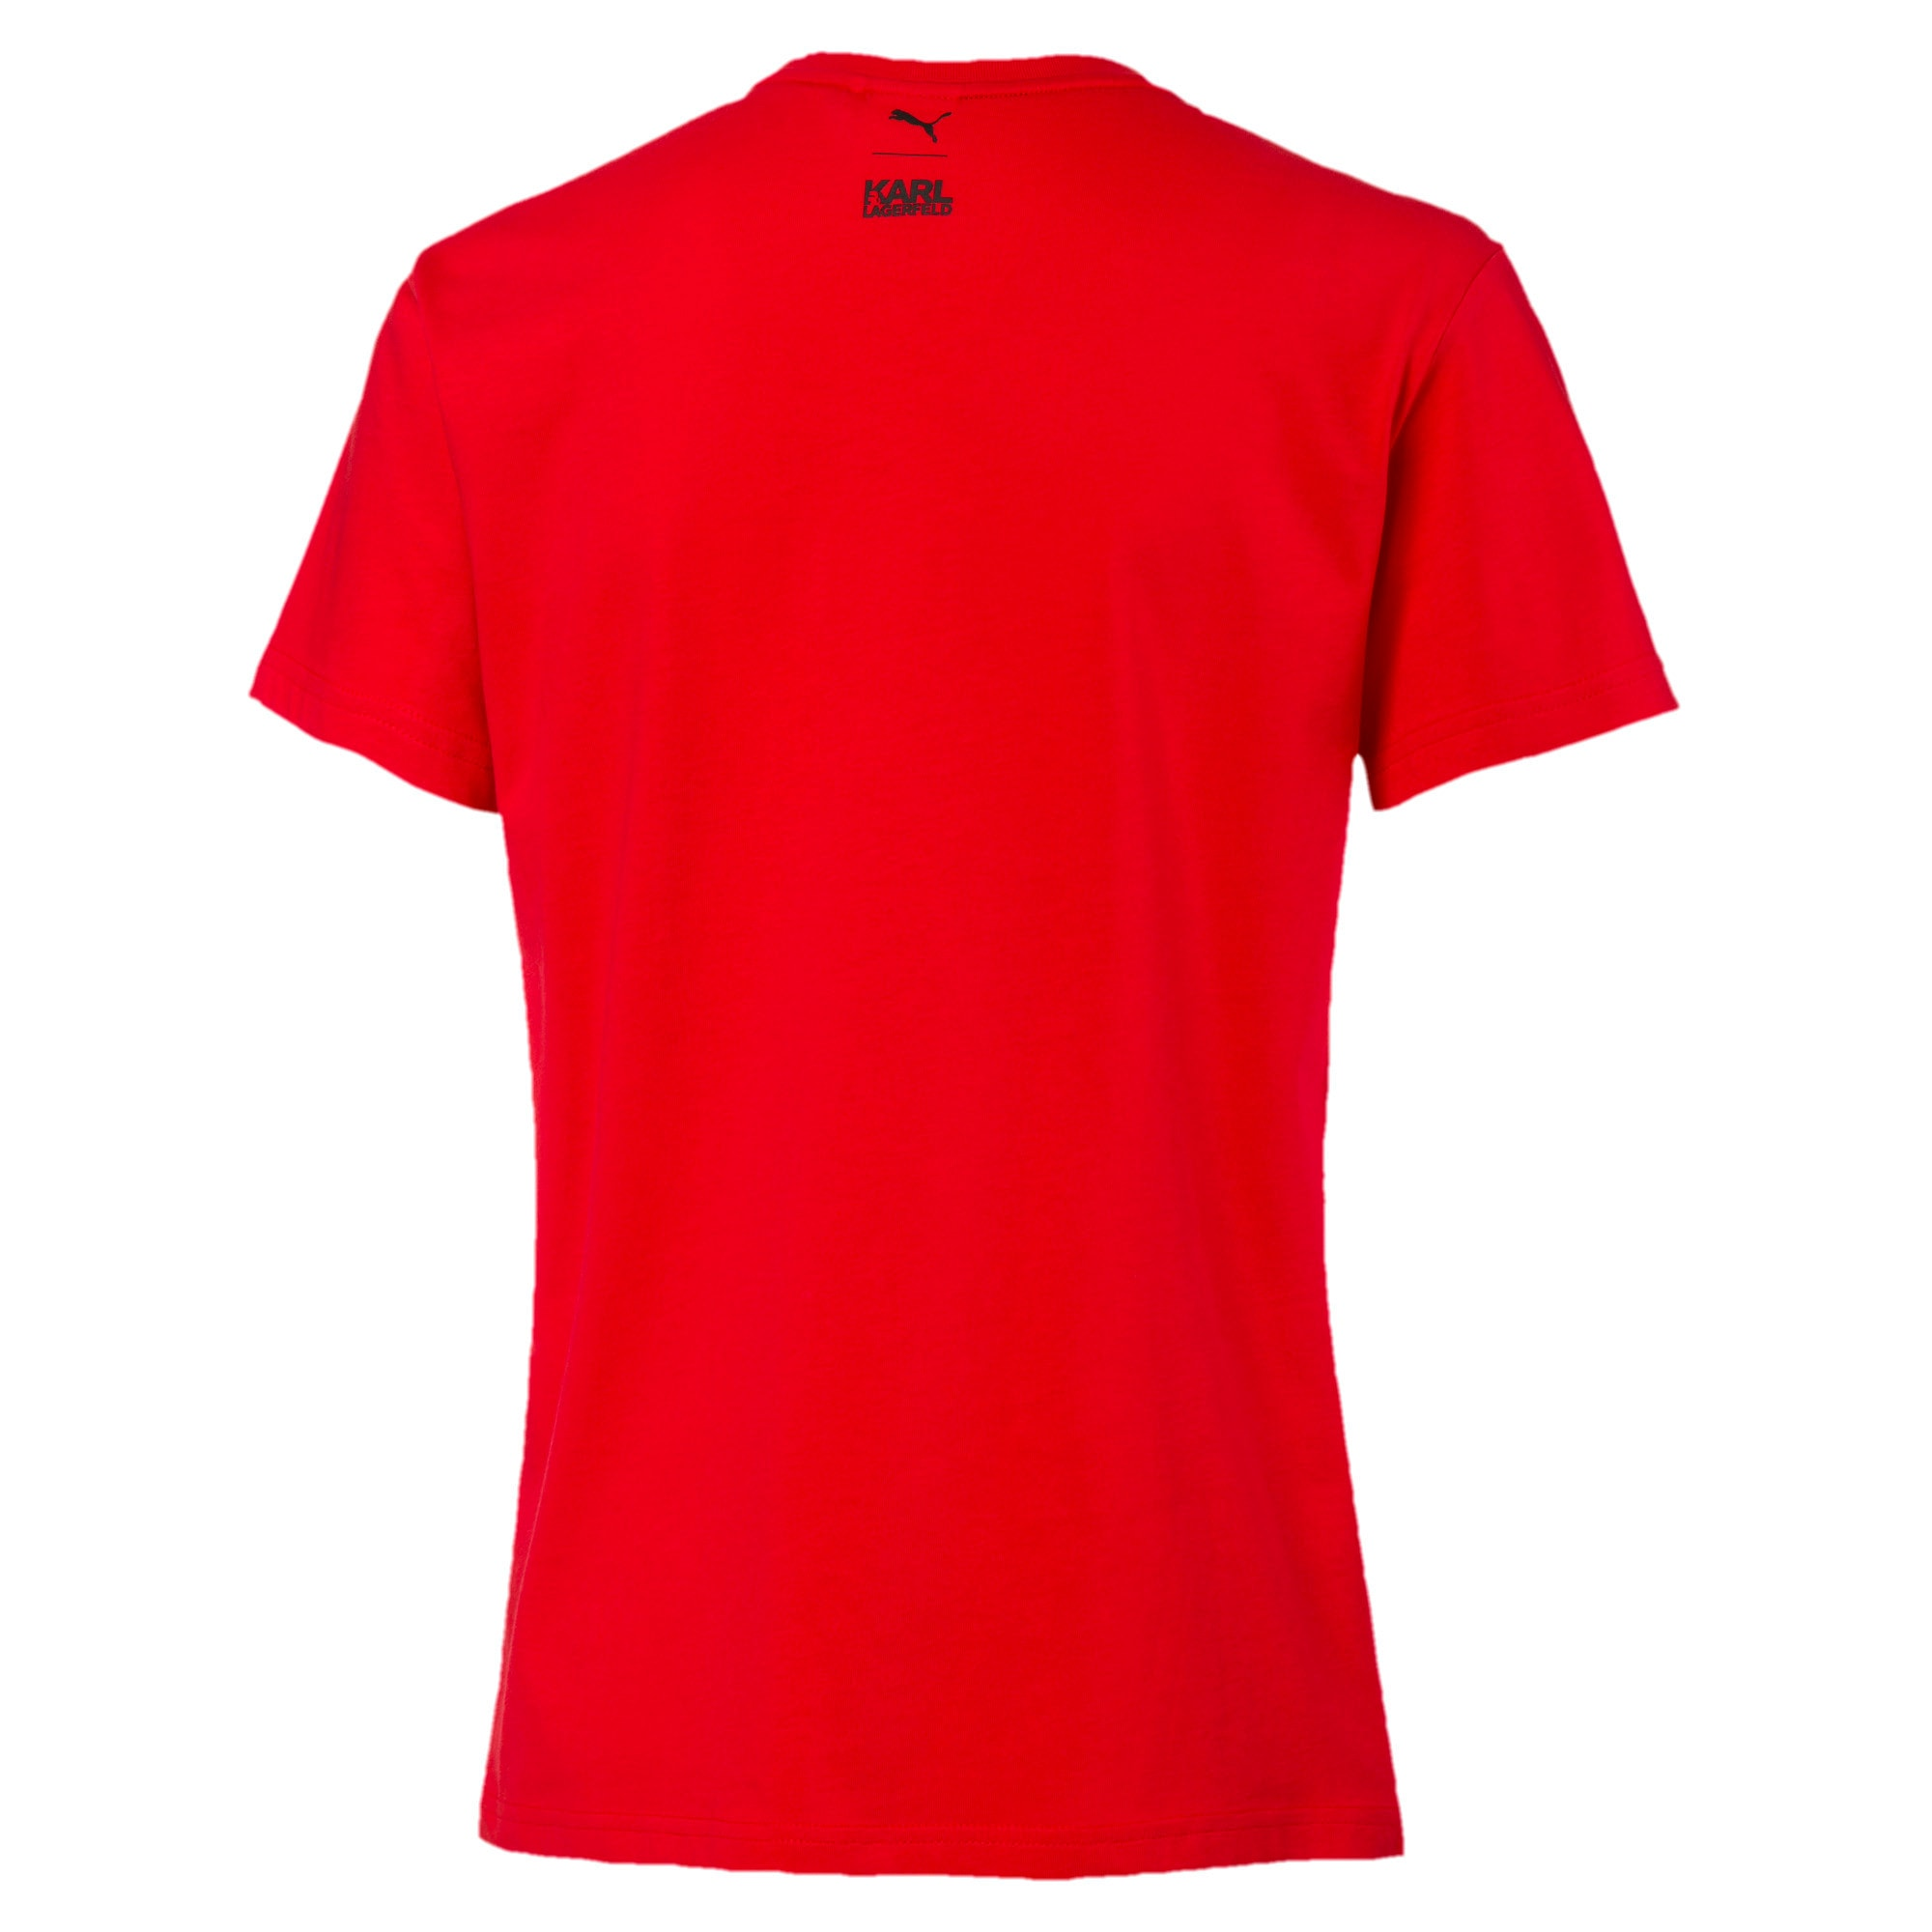 Thumbnail 2 of PUMA x KARL LAGERFELD Damen T-Shirt, High Risk Red, medium